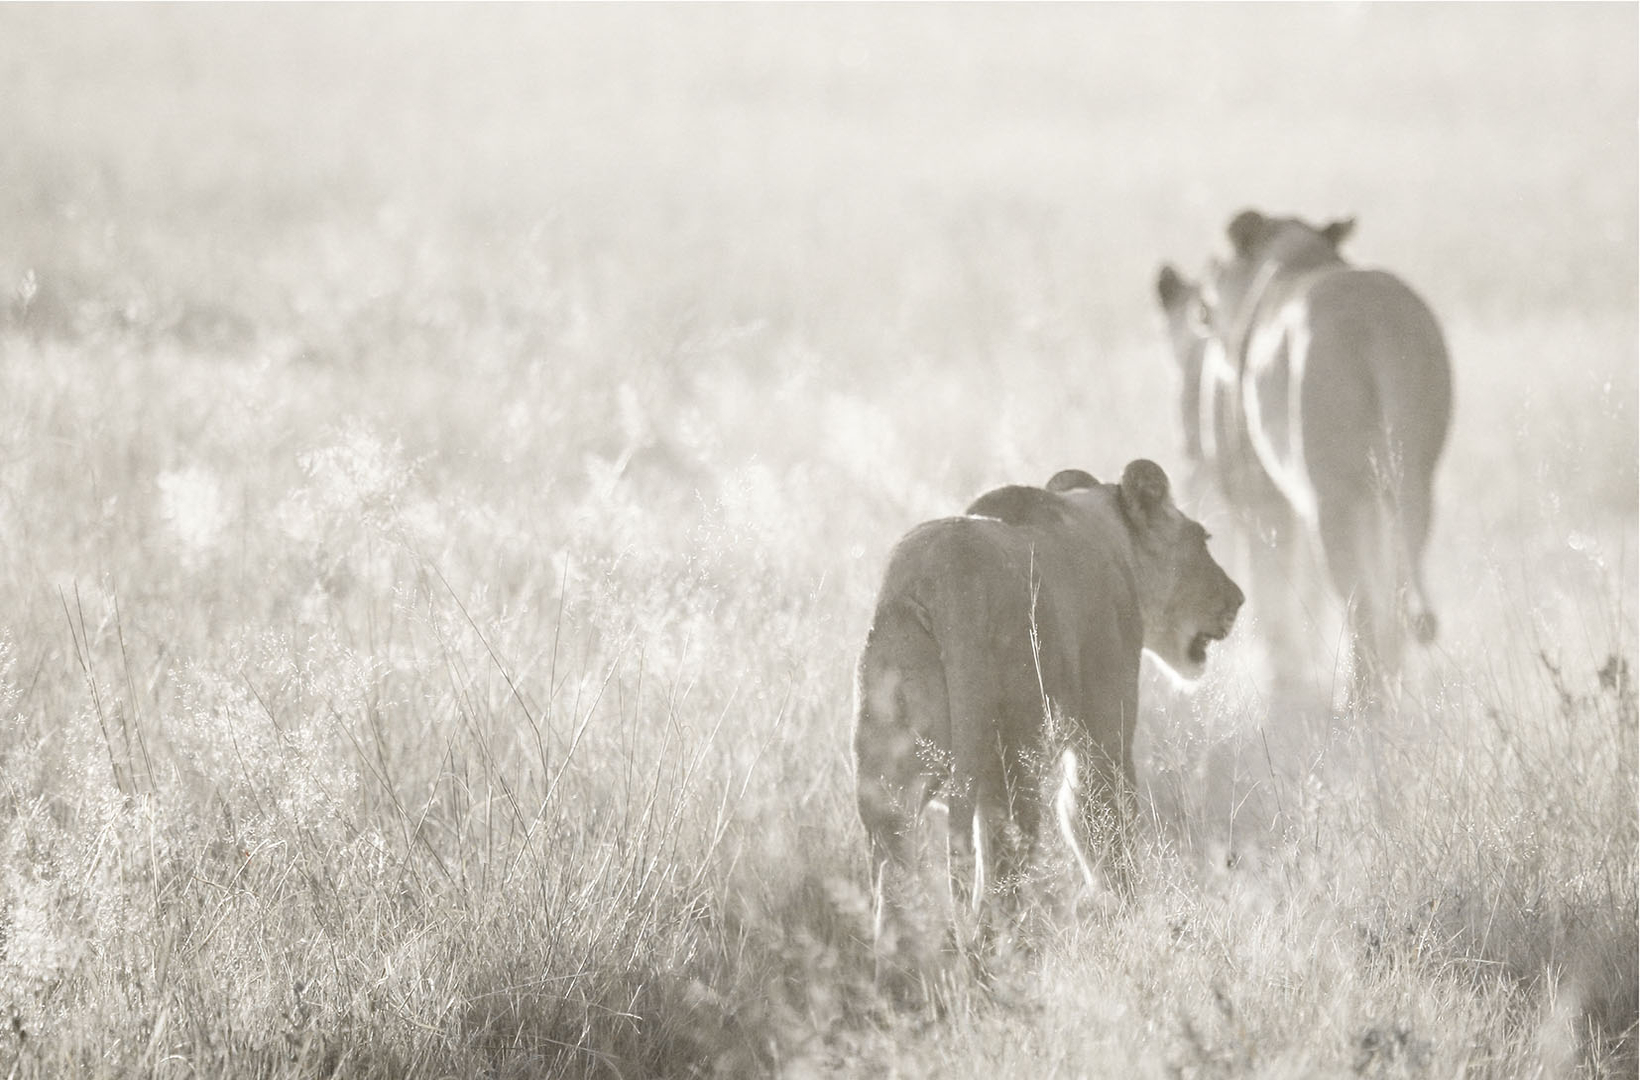 African lionesses patrol a grassy plain at dusk at Khwai River in Botswana